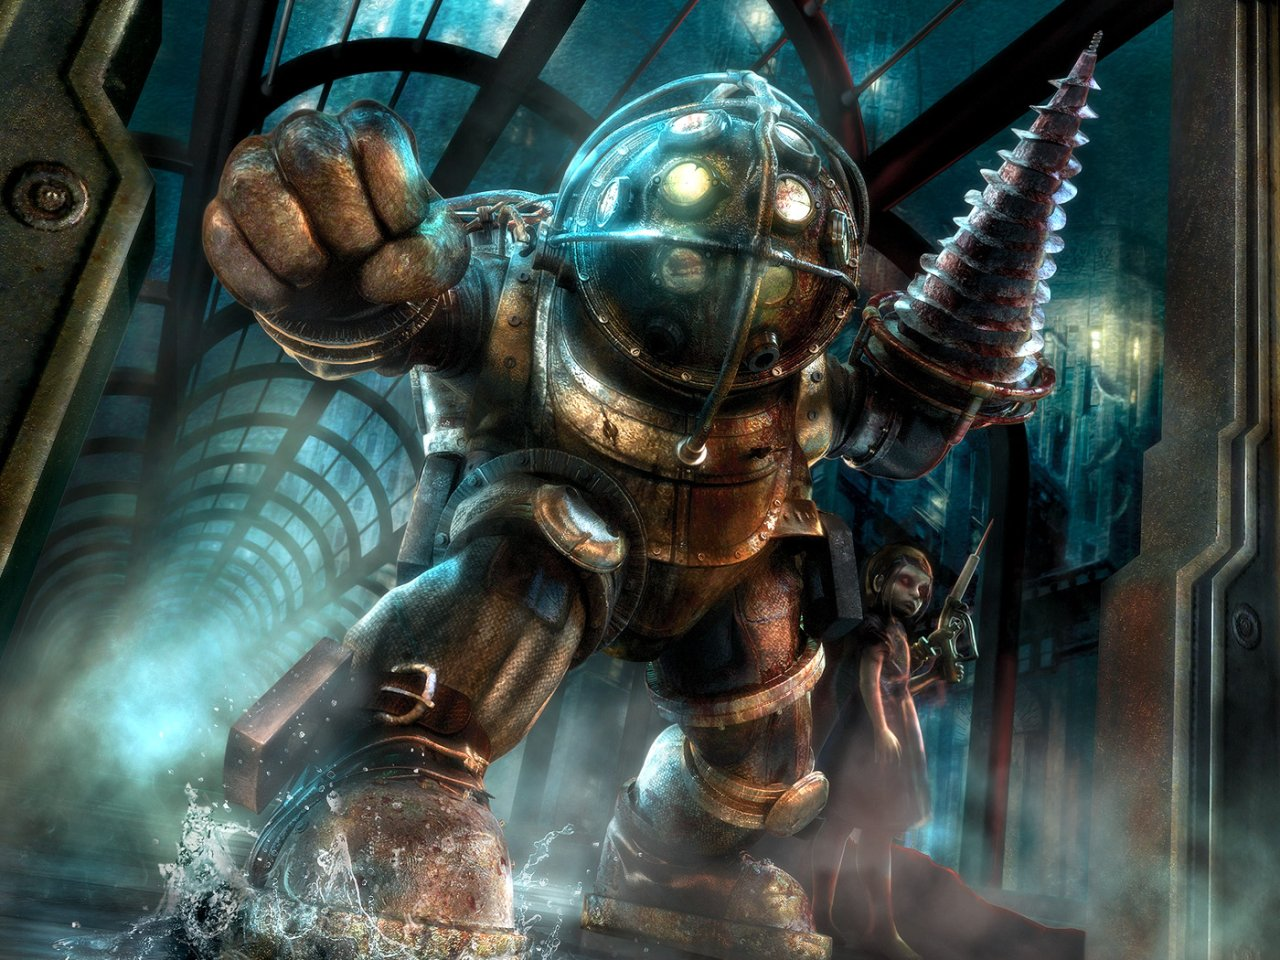 Is the Bioshock movie still in the works?